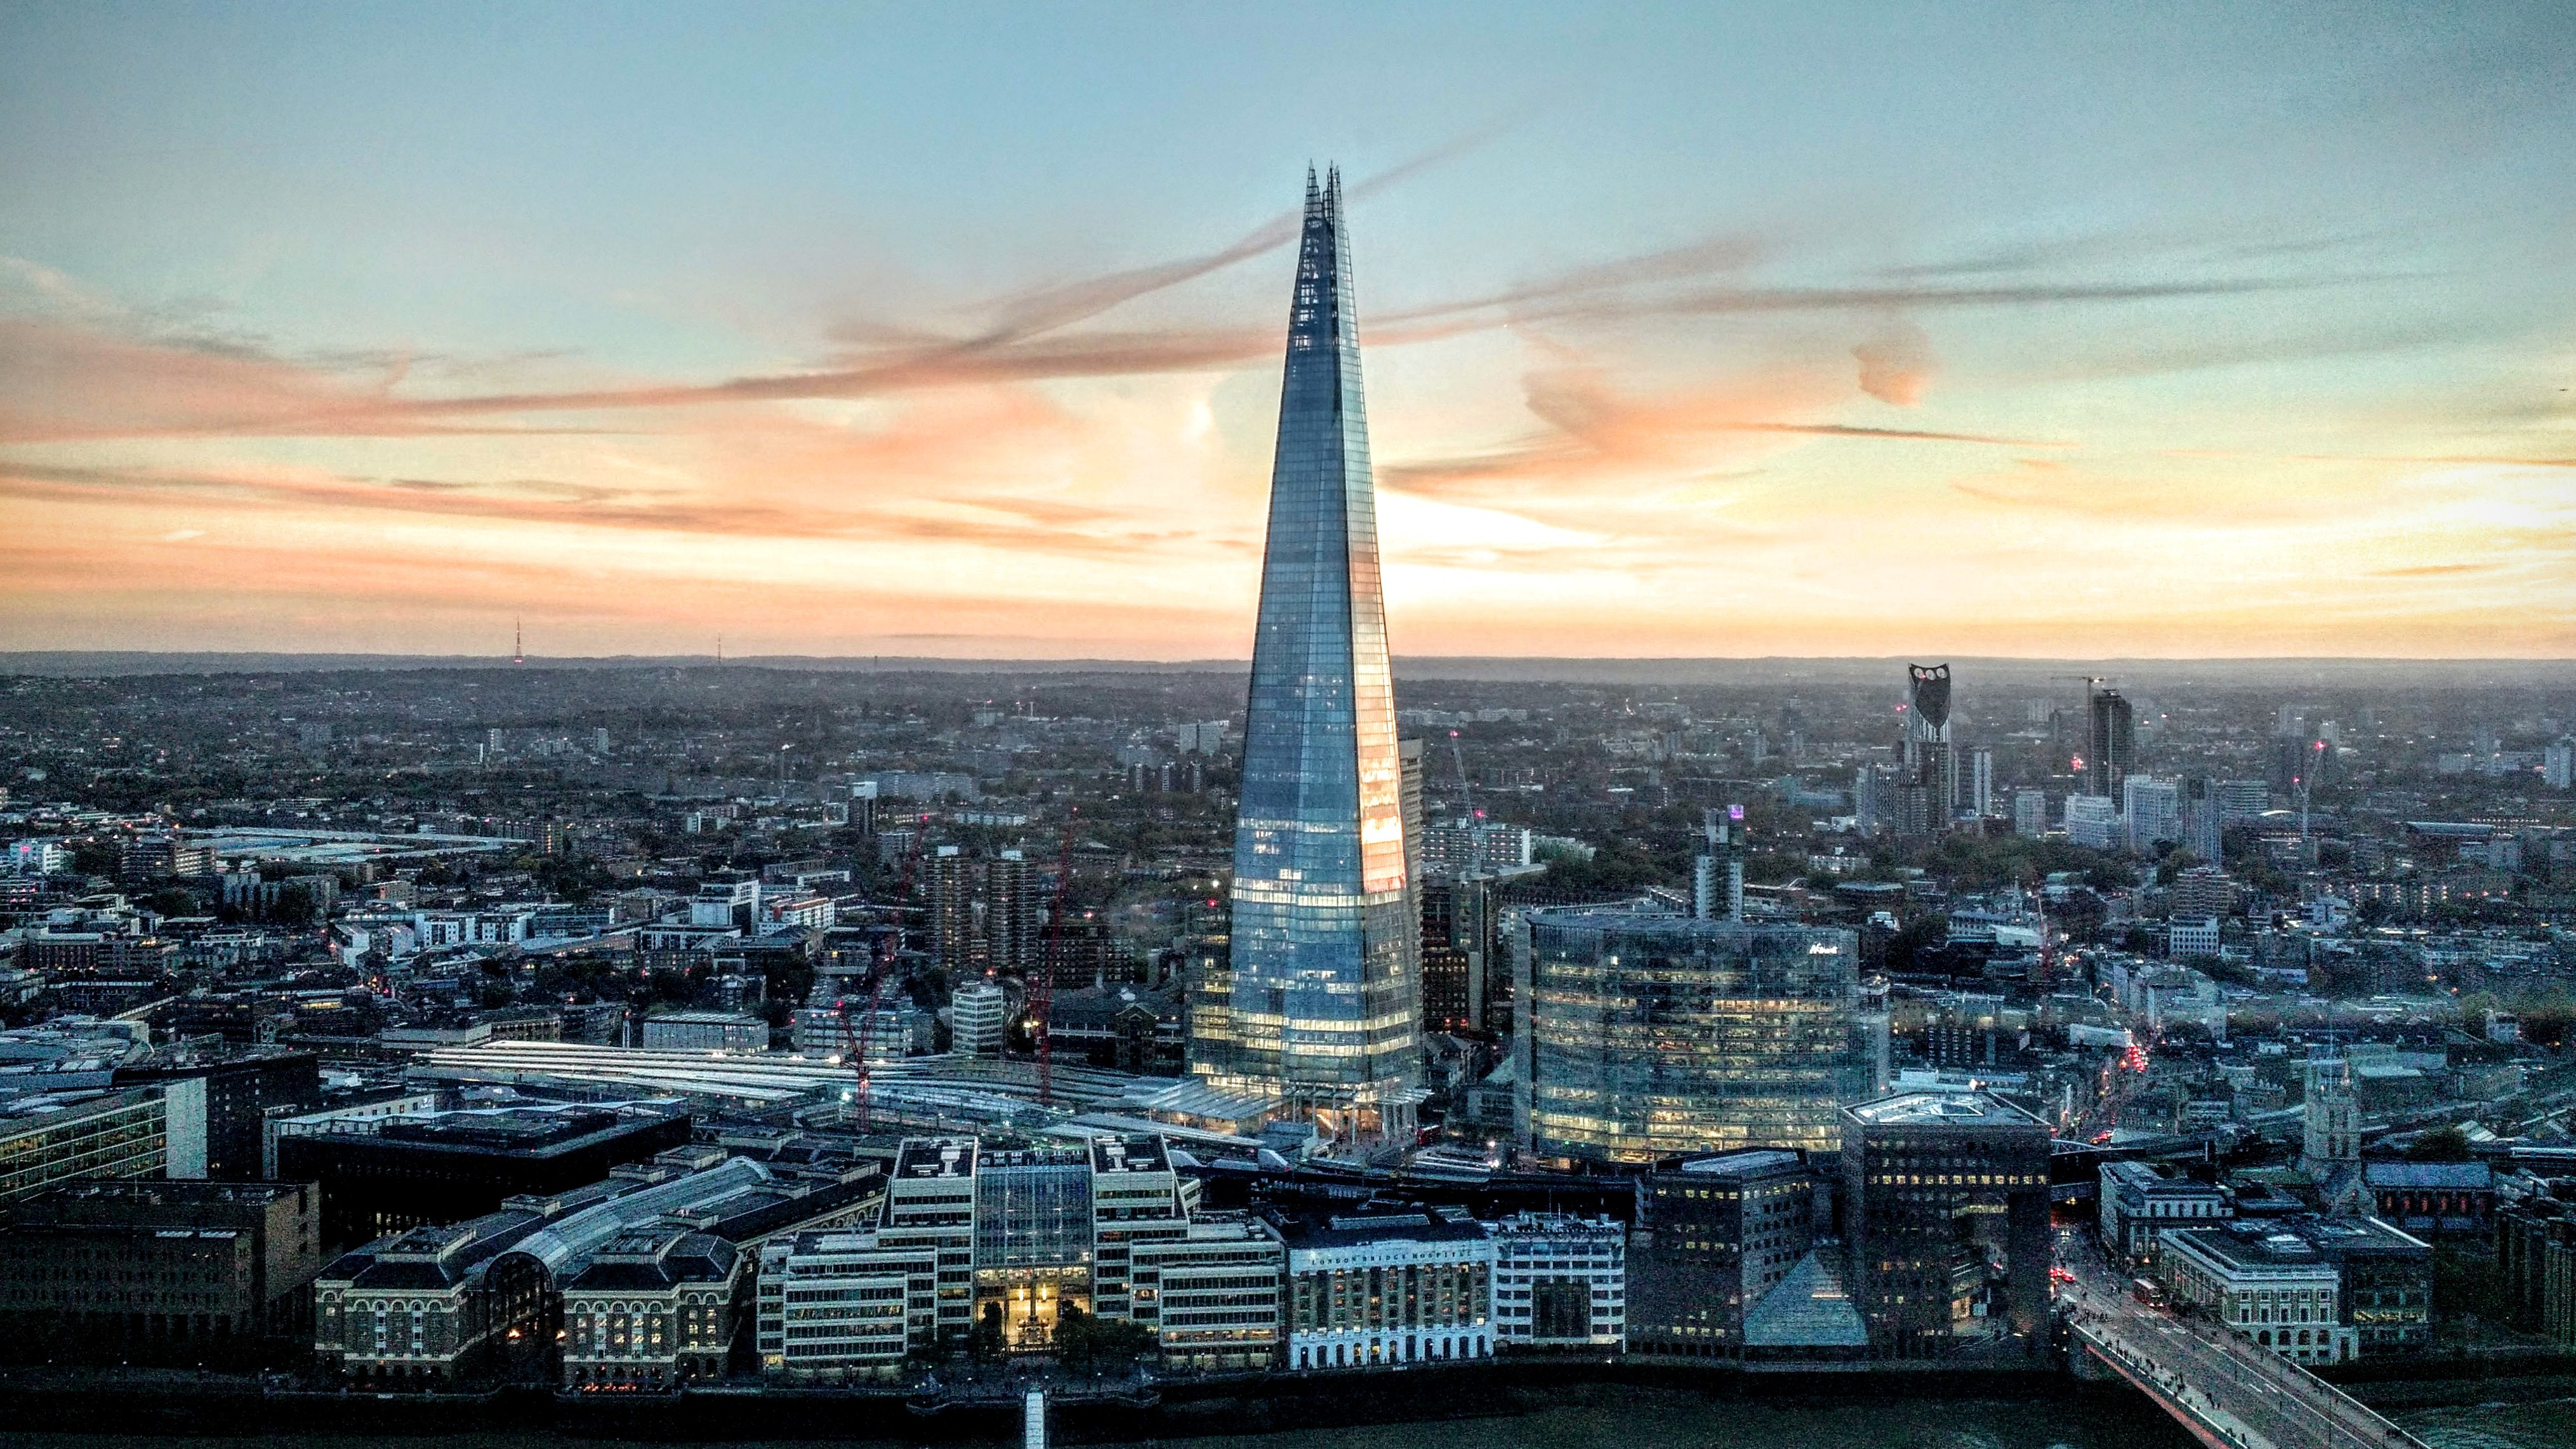 truell single family office invests in reg uk funding round